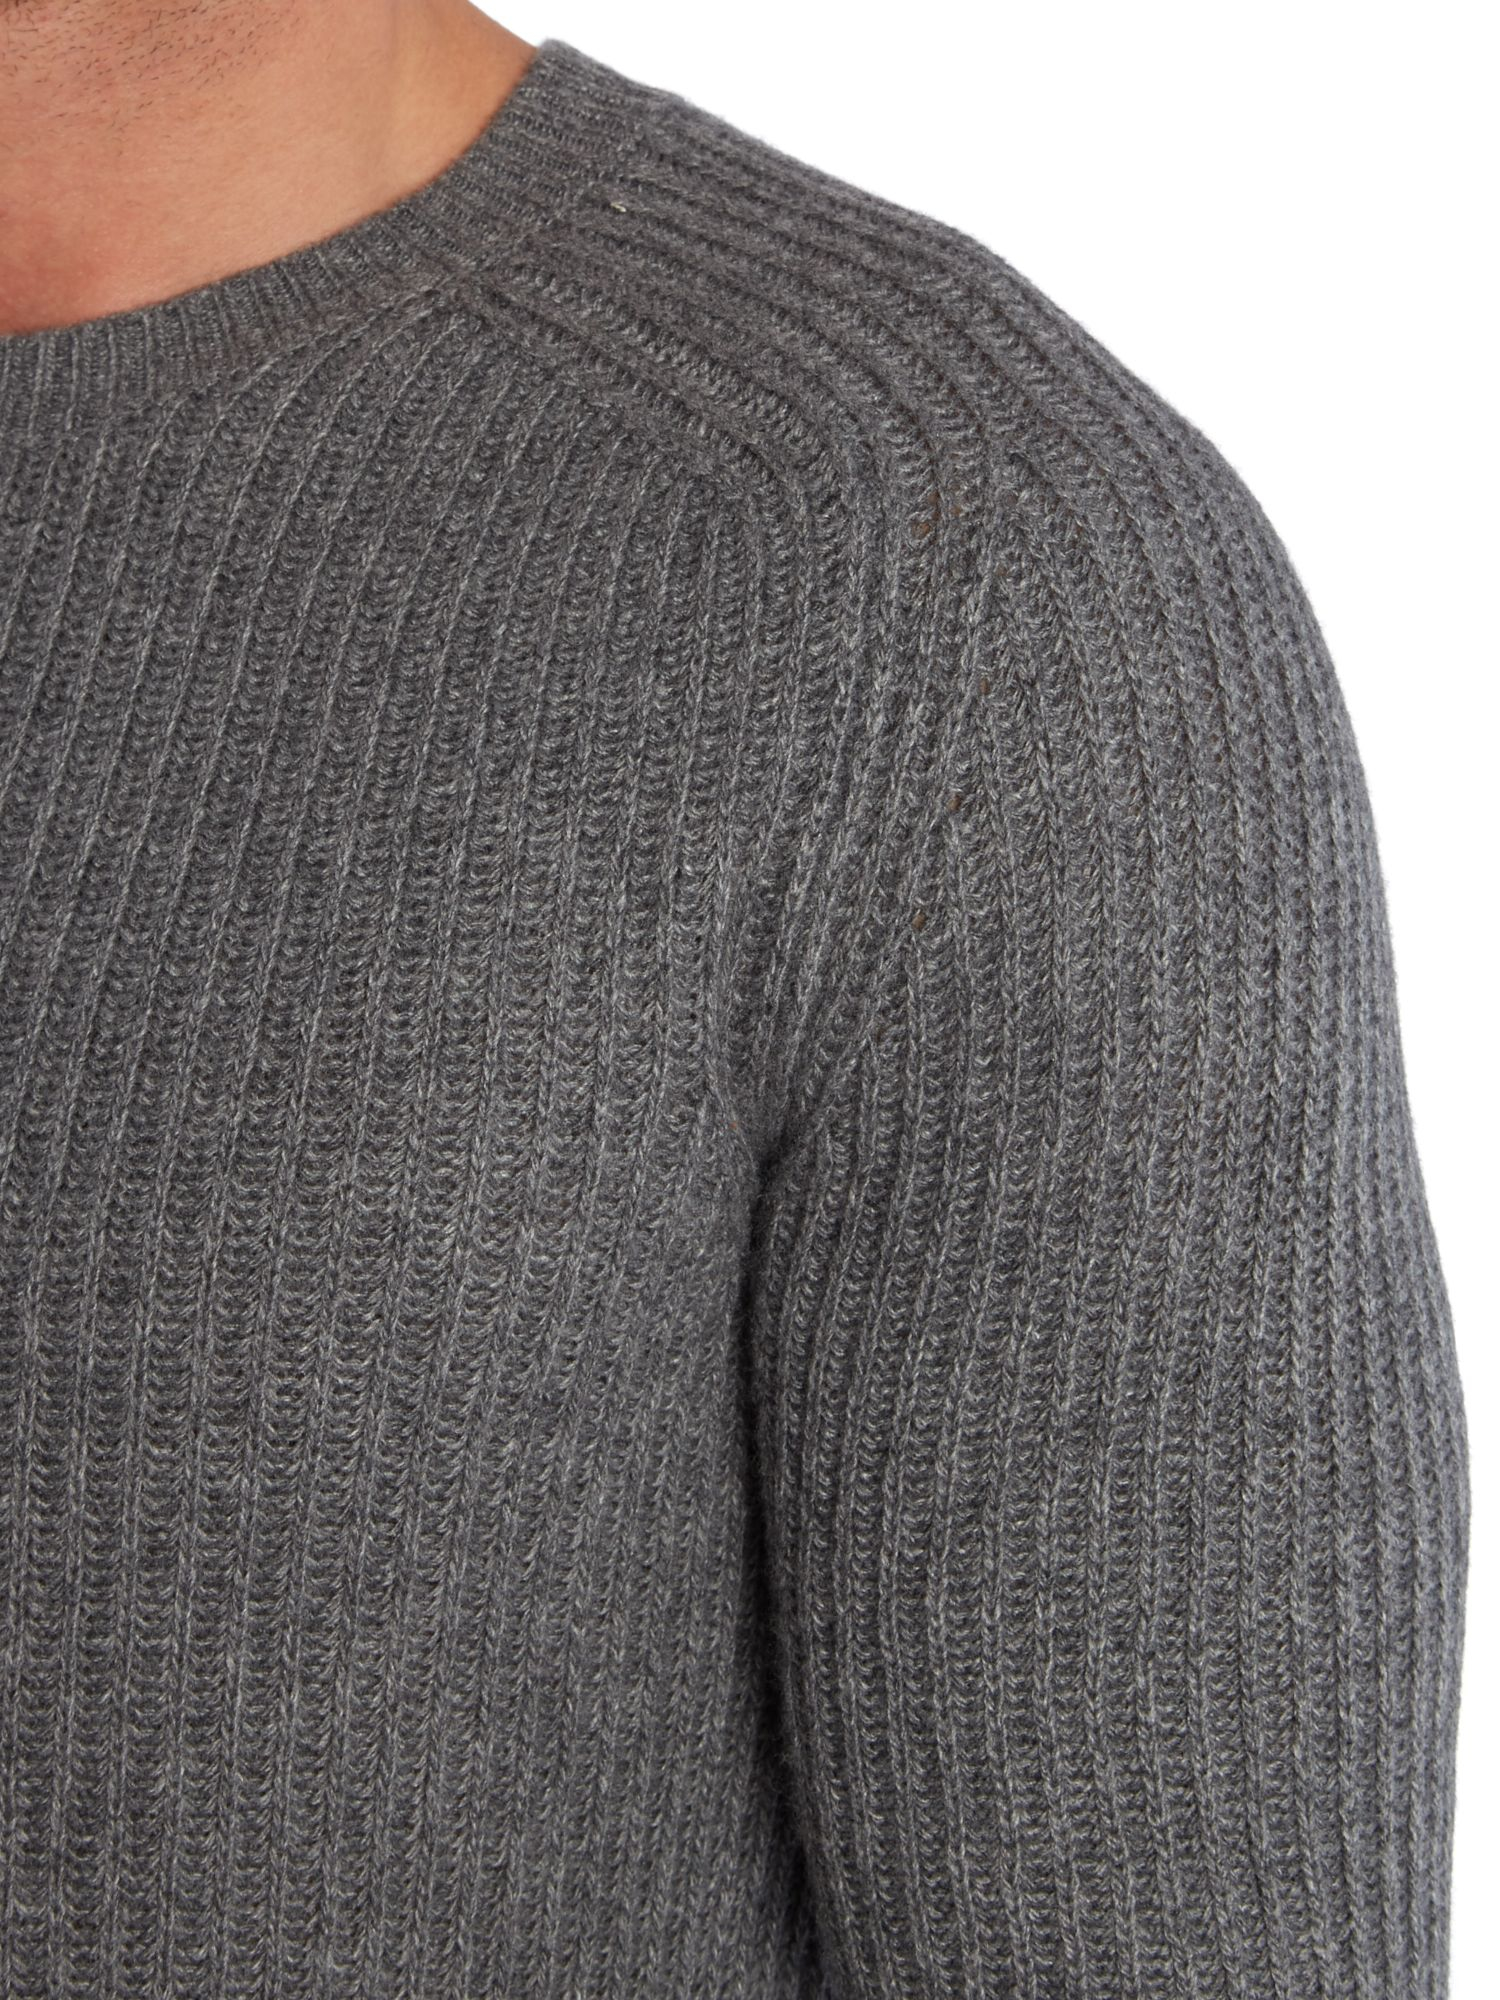 Sisley Ribbed Crew Neck Knitted Jumper In Gray For Men Lyst